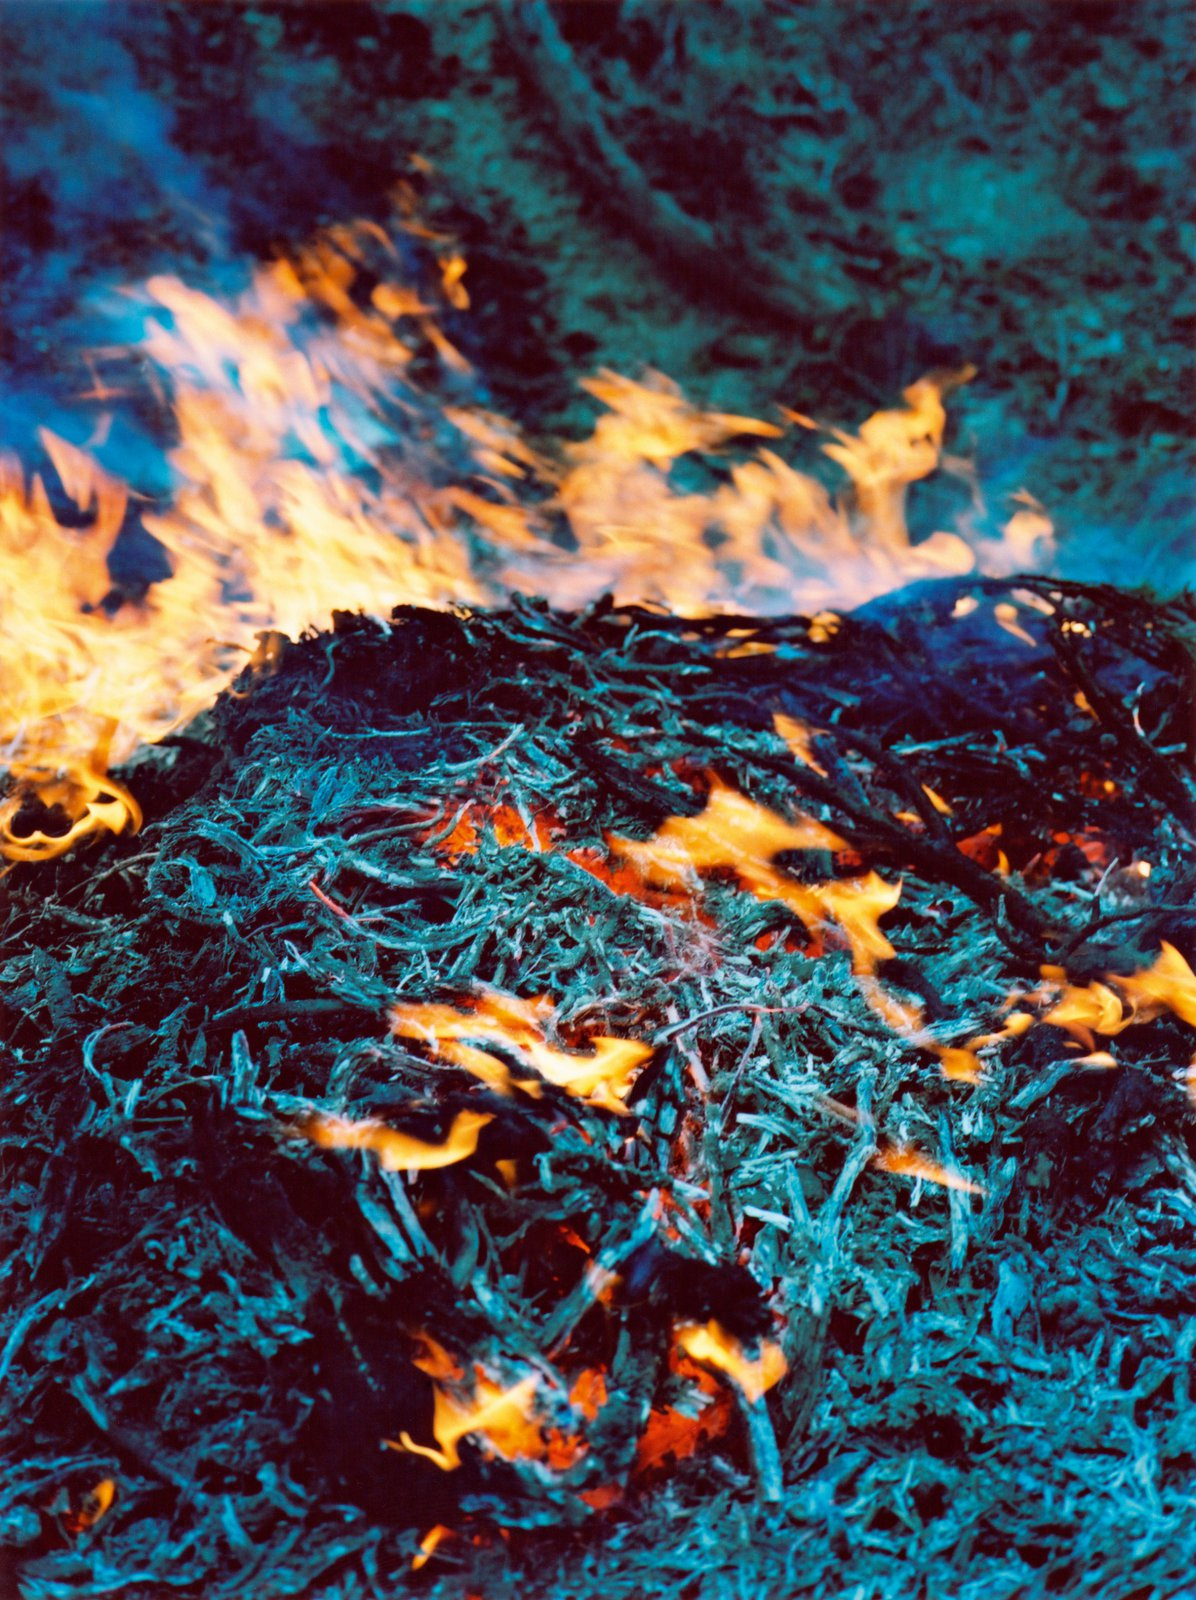 Fire, 2013, Mustang (Nepal) from the series Dzogchen  © Vincent Delbrouck, courtesy of STIEGLITZ19.